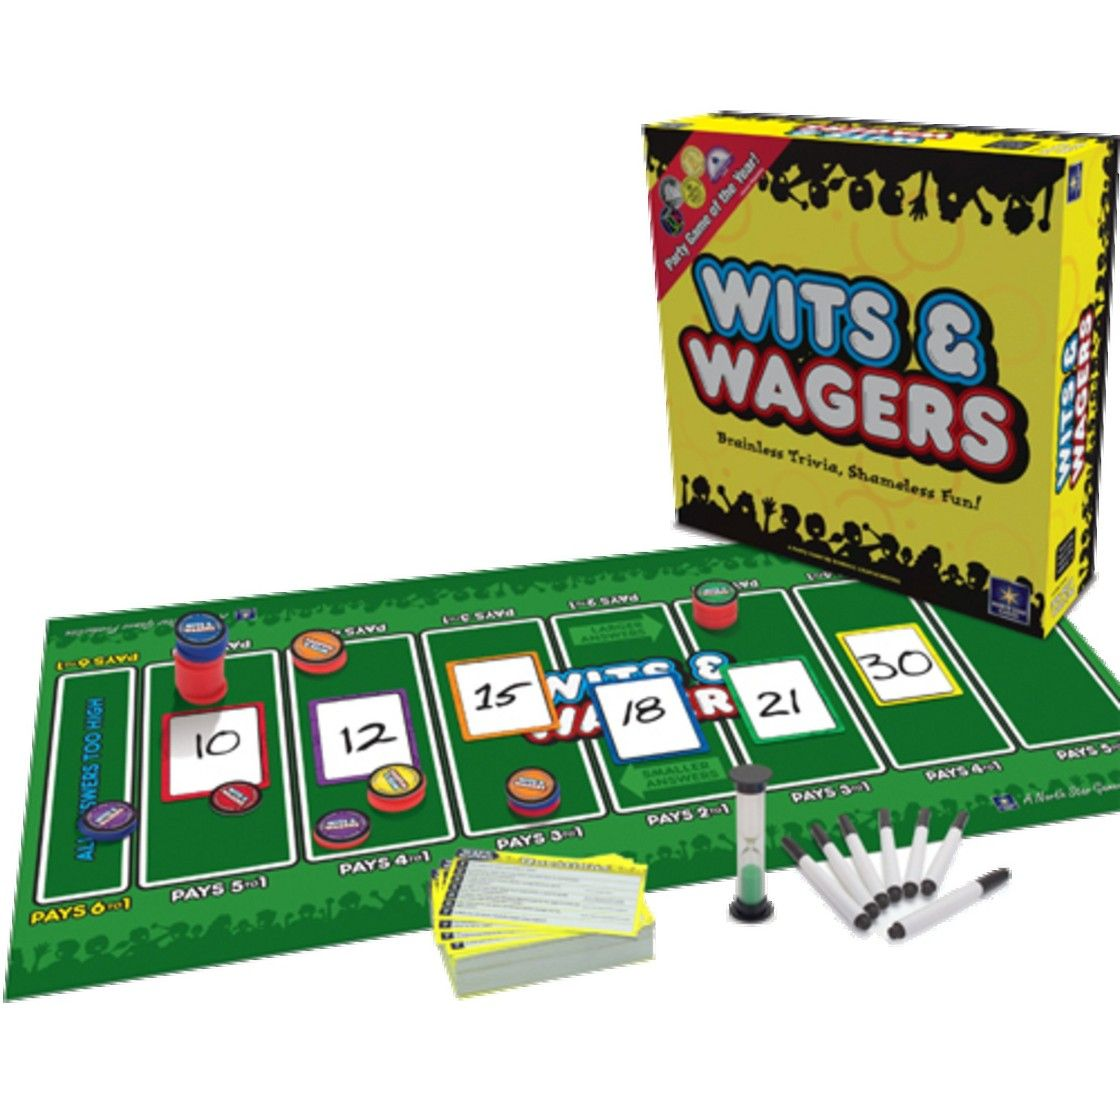 Wits and wagers betting rules for roulette betting shops uk history jobs